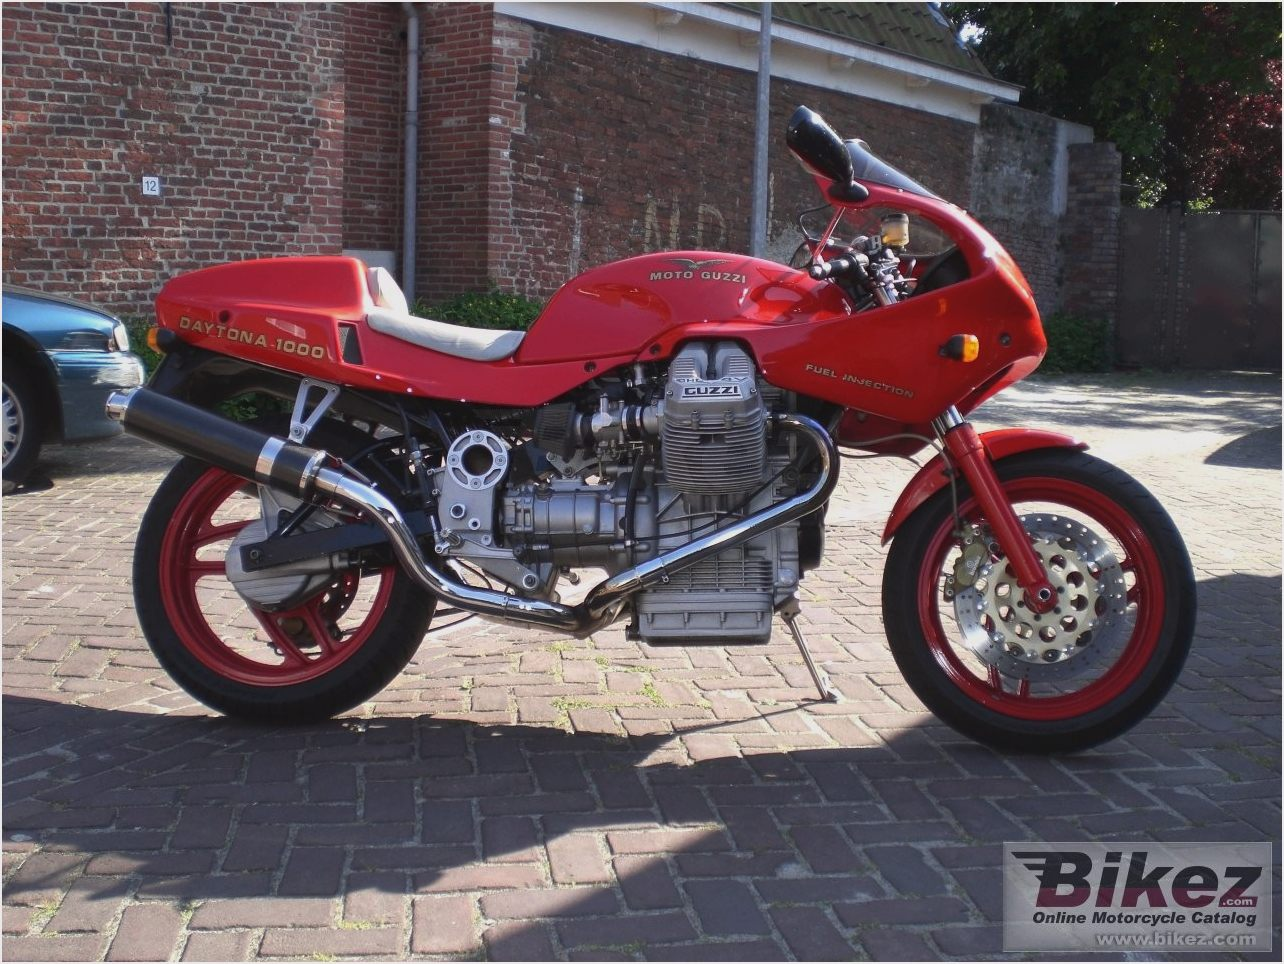 Moto Guzzi 1000 Daytona Injection images #108548